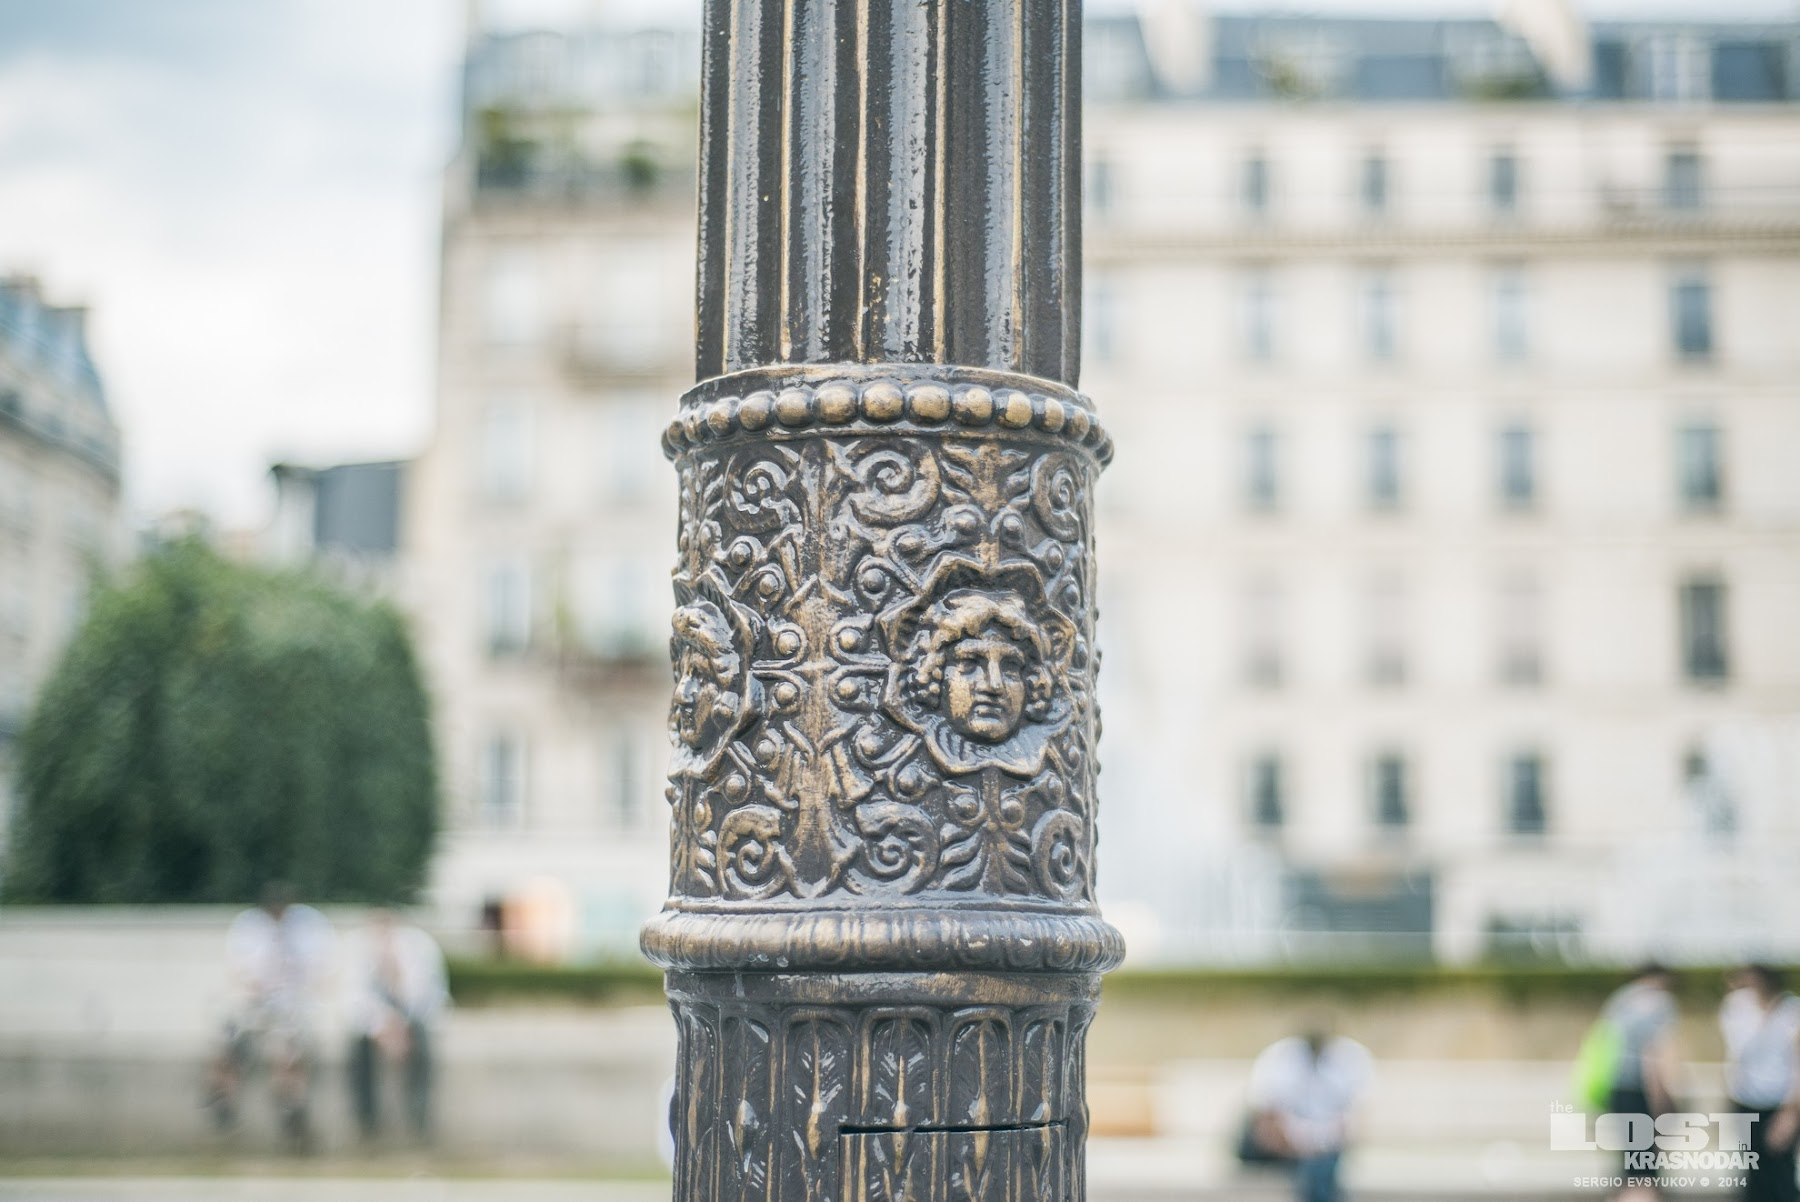 decoration on a pillar in Paris